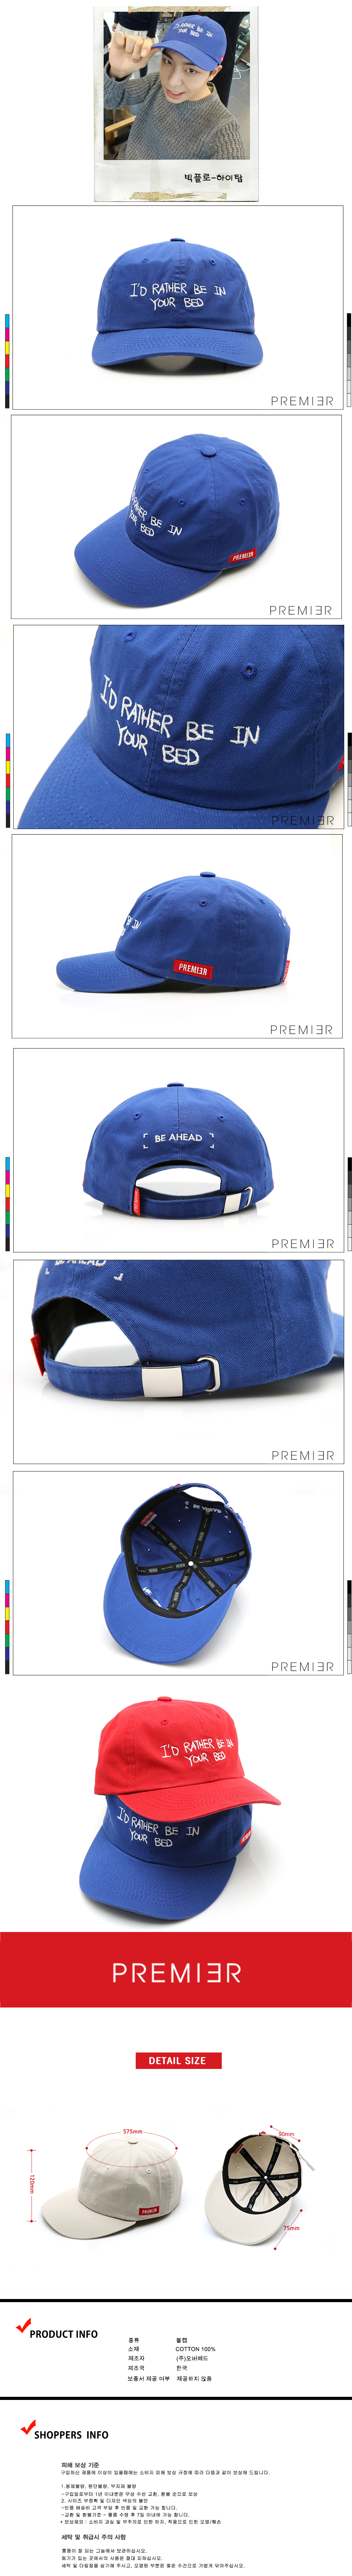 [ PREMIER ] [Premier] Washing Ball Cap RATHER BE Blue (P757)